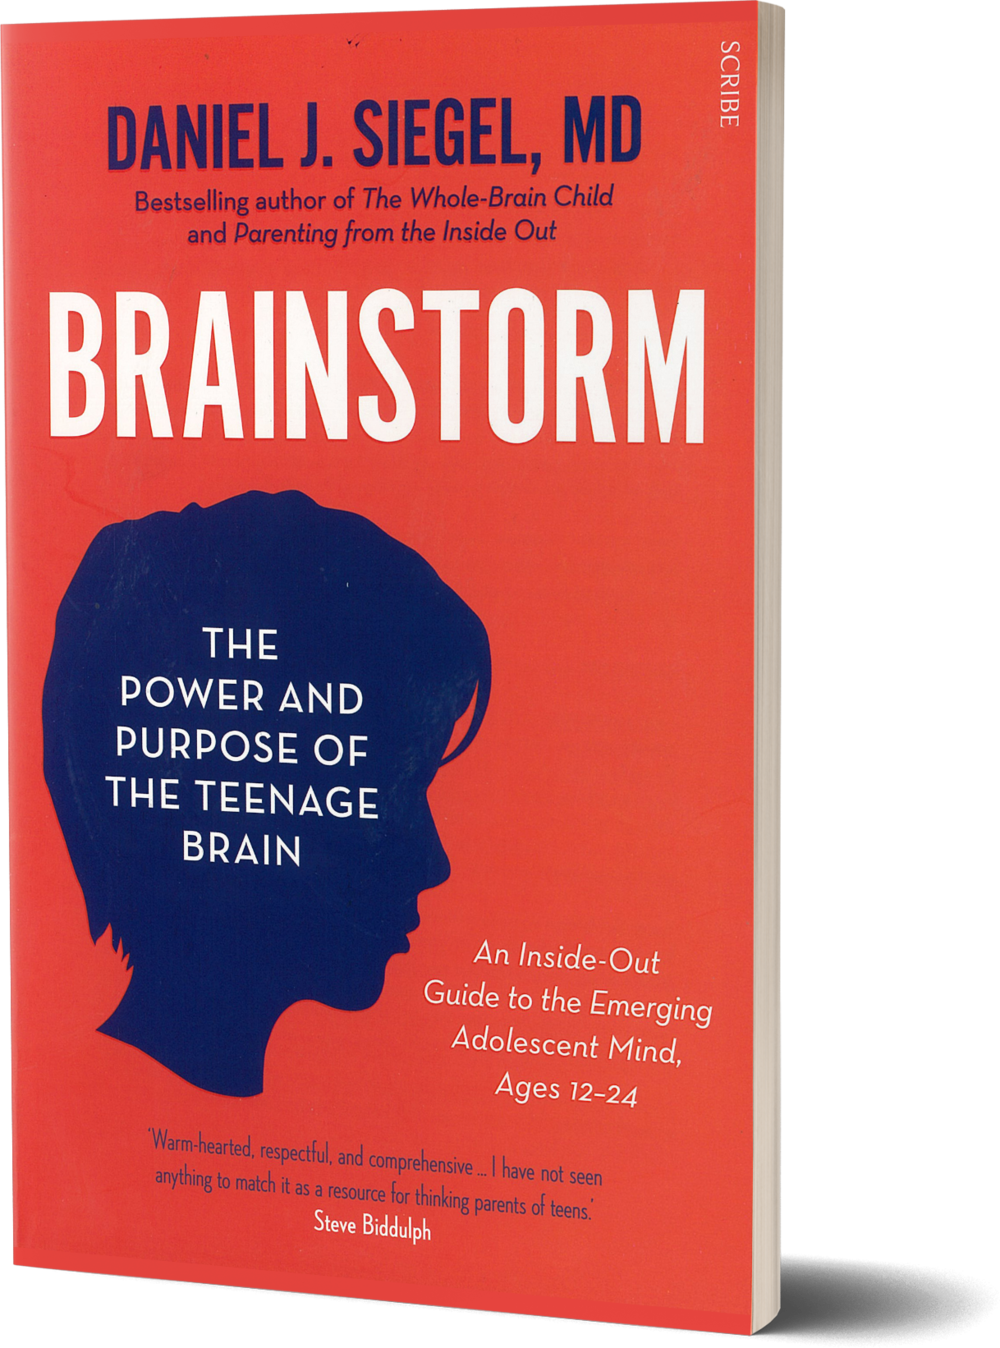 Brainstorm- The Power and Purpose of the Teenage Brain by Daniel J. Siegel, M.D.png